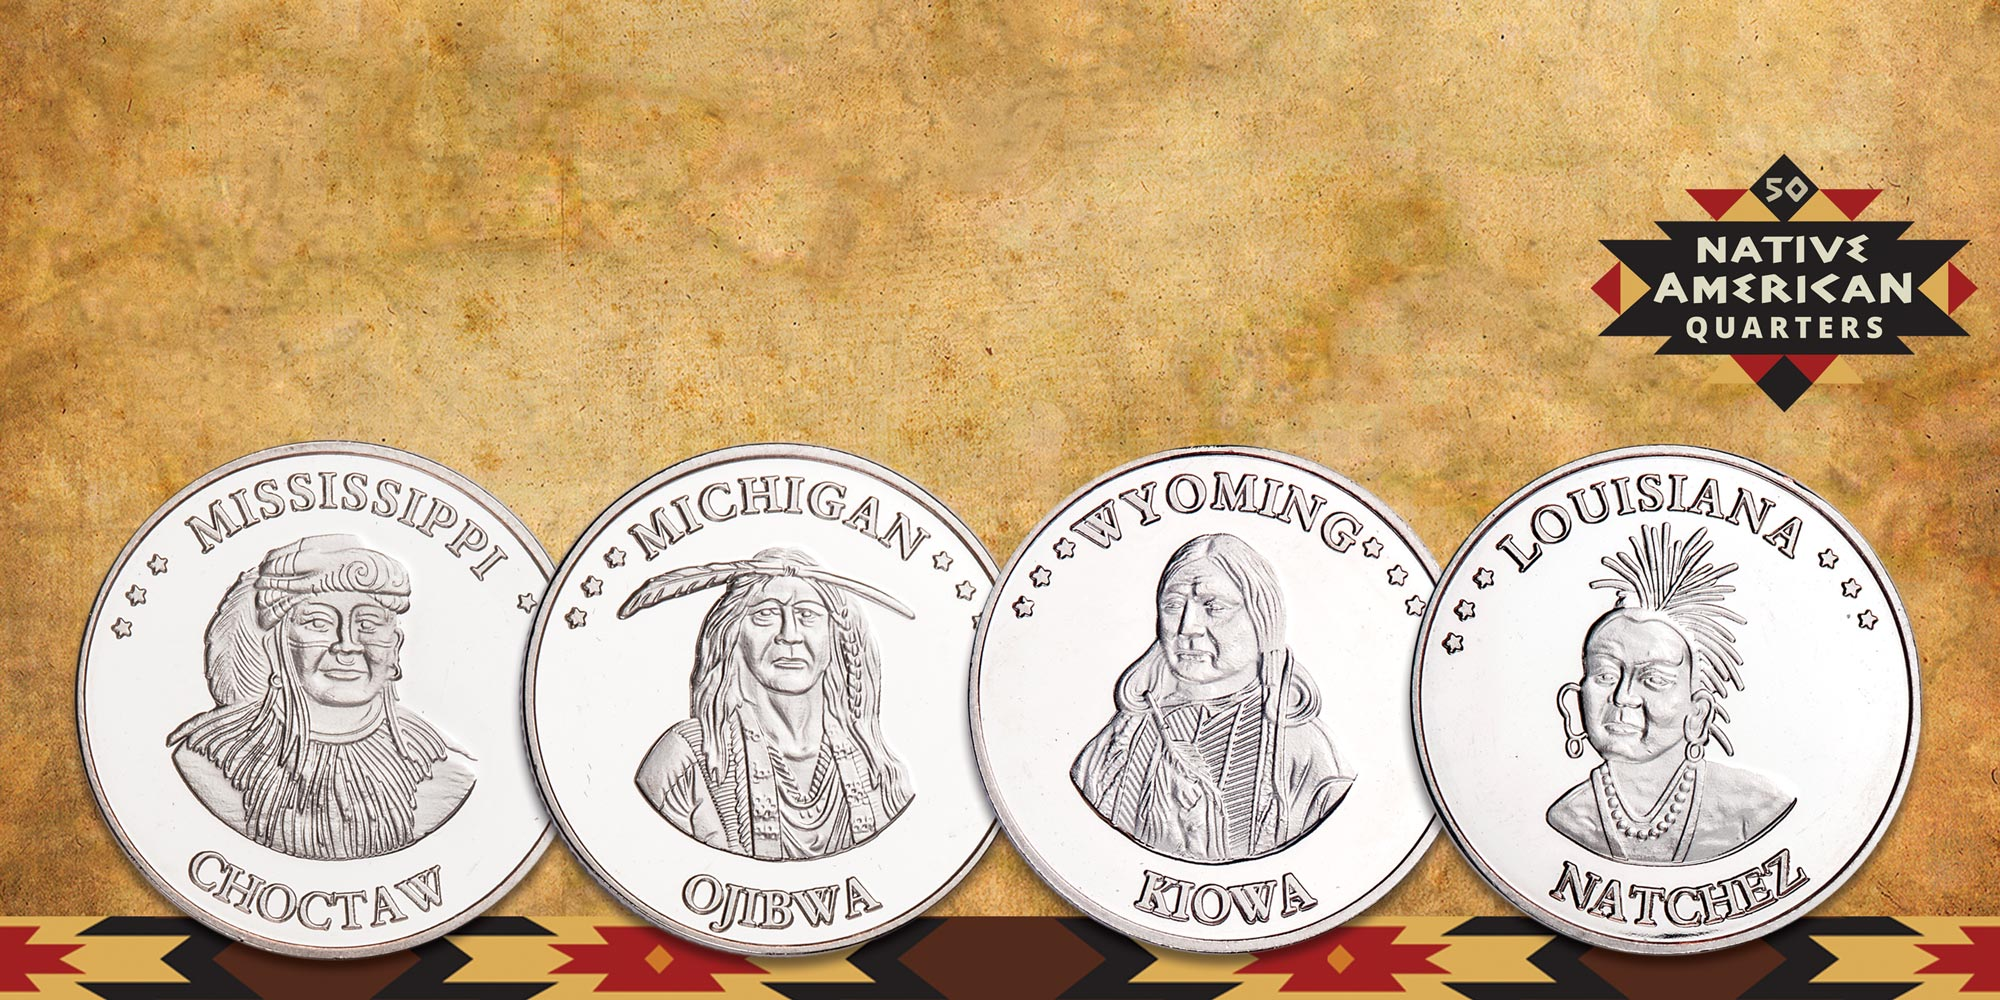 Native American Quarters